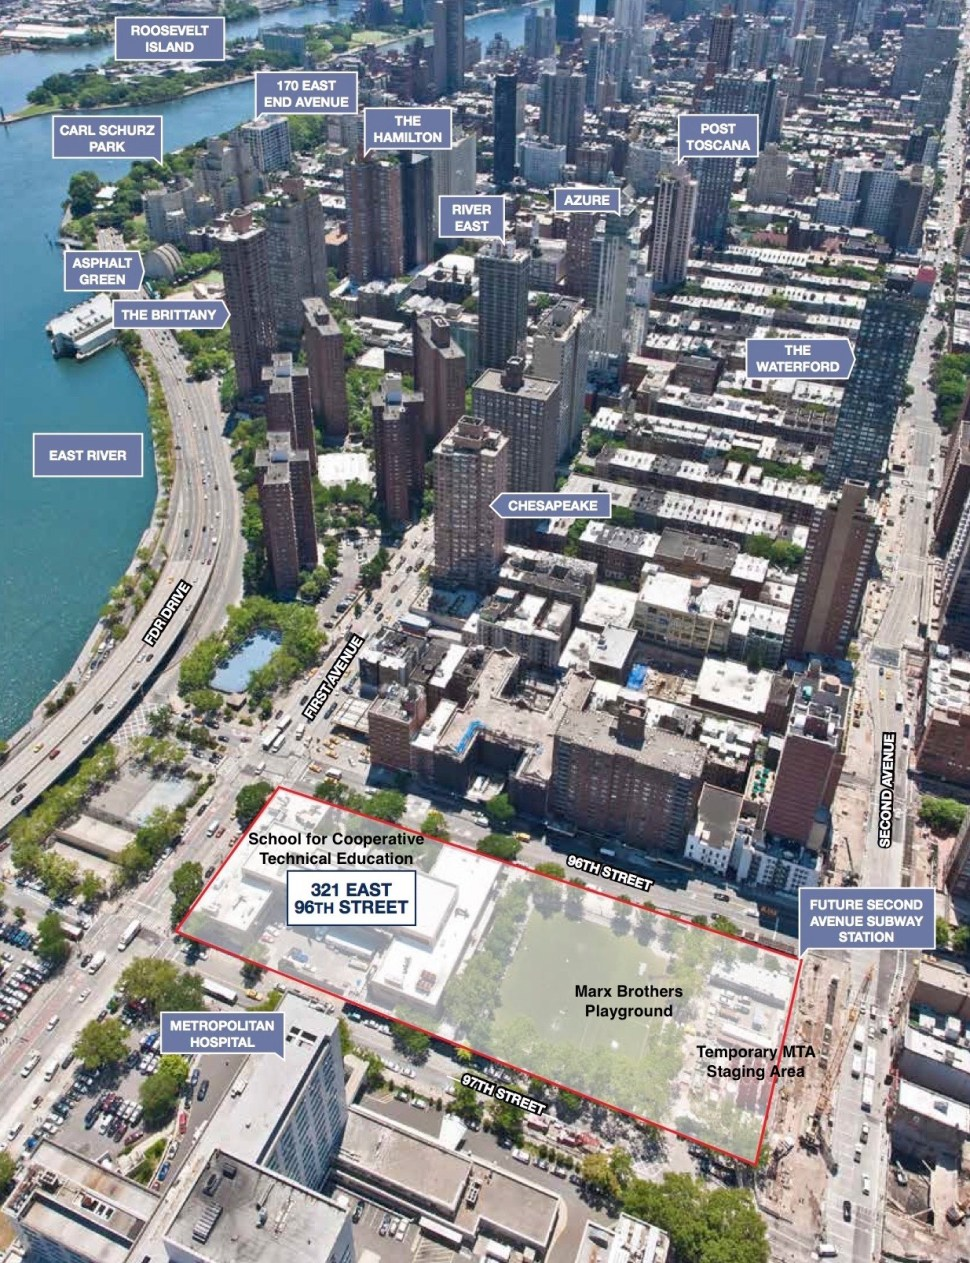 Redevelopment Plan for 321 East 96th Street. From ECF's Request for Expressions of Interest [RFEI]. Photo by the CBRE Group. 2013.